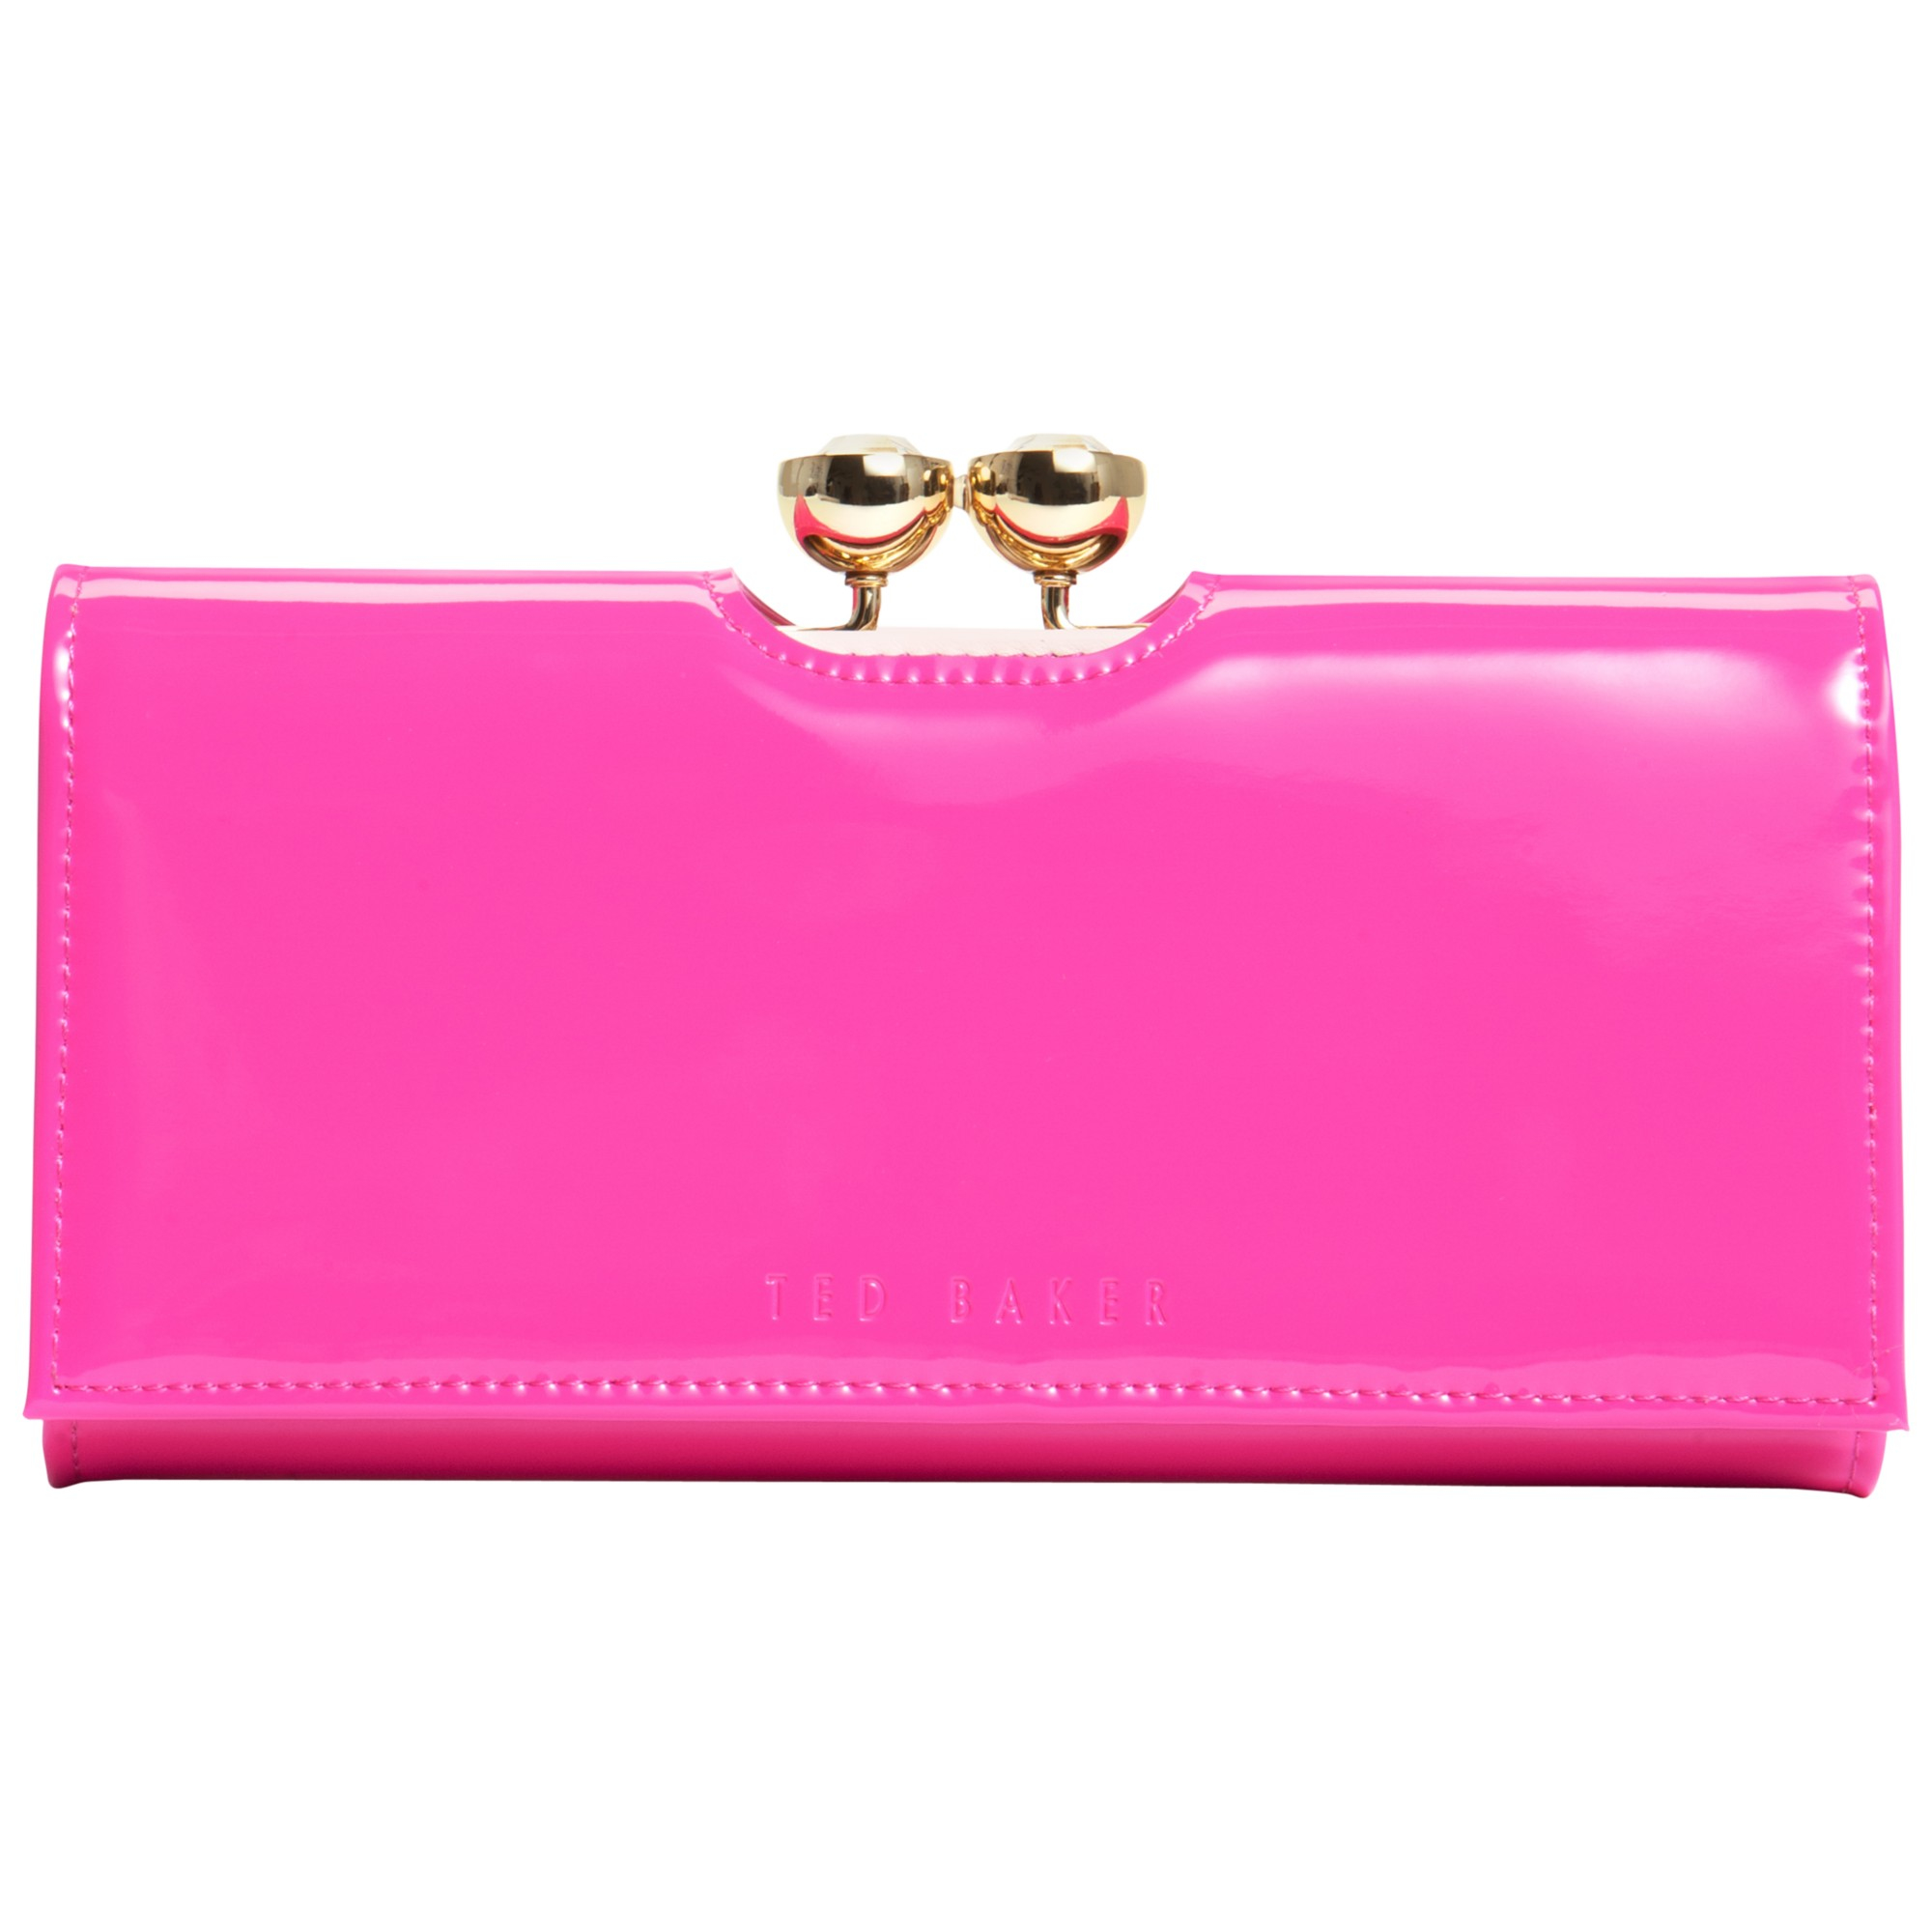 0ab3a59efe3f Ted Baker Kassady Crystal Bobble Leather Matinee Purse in Pink - Lyst